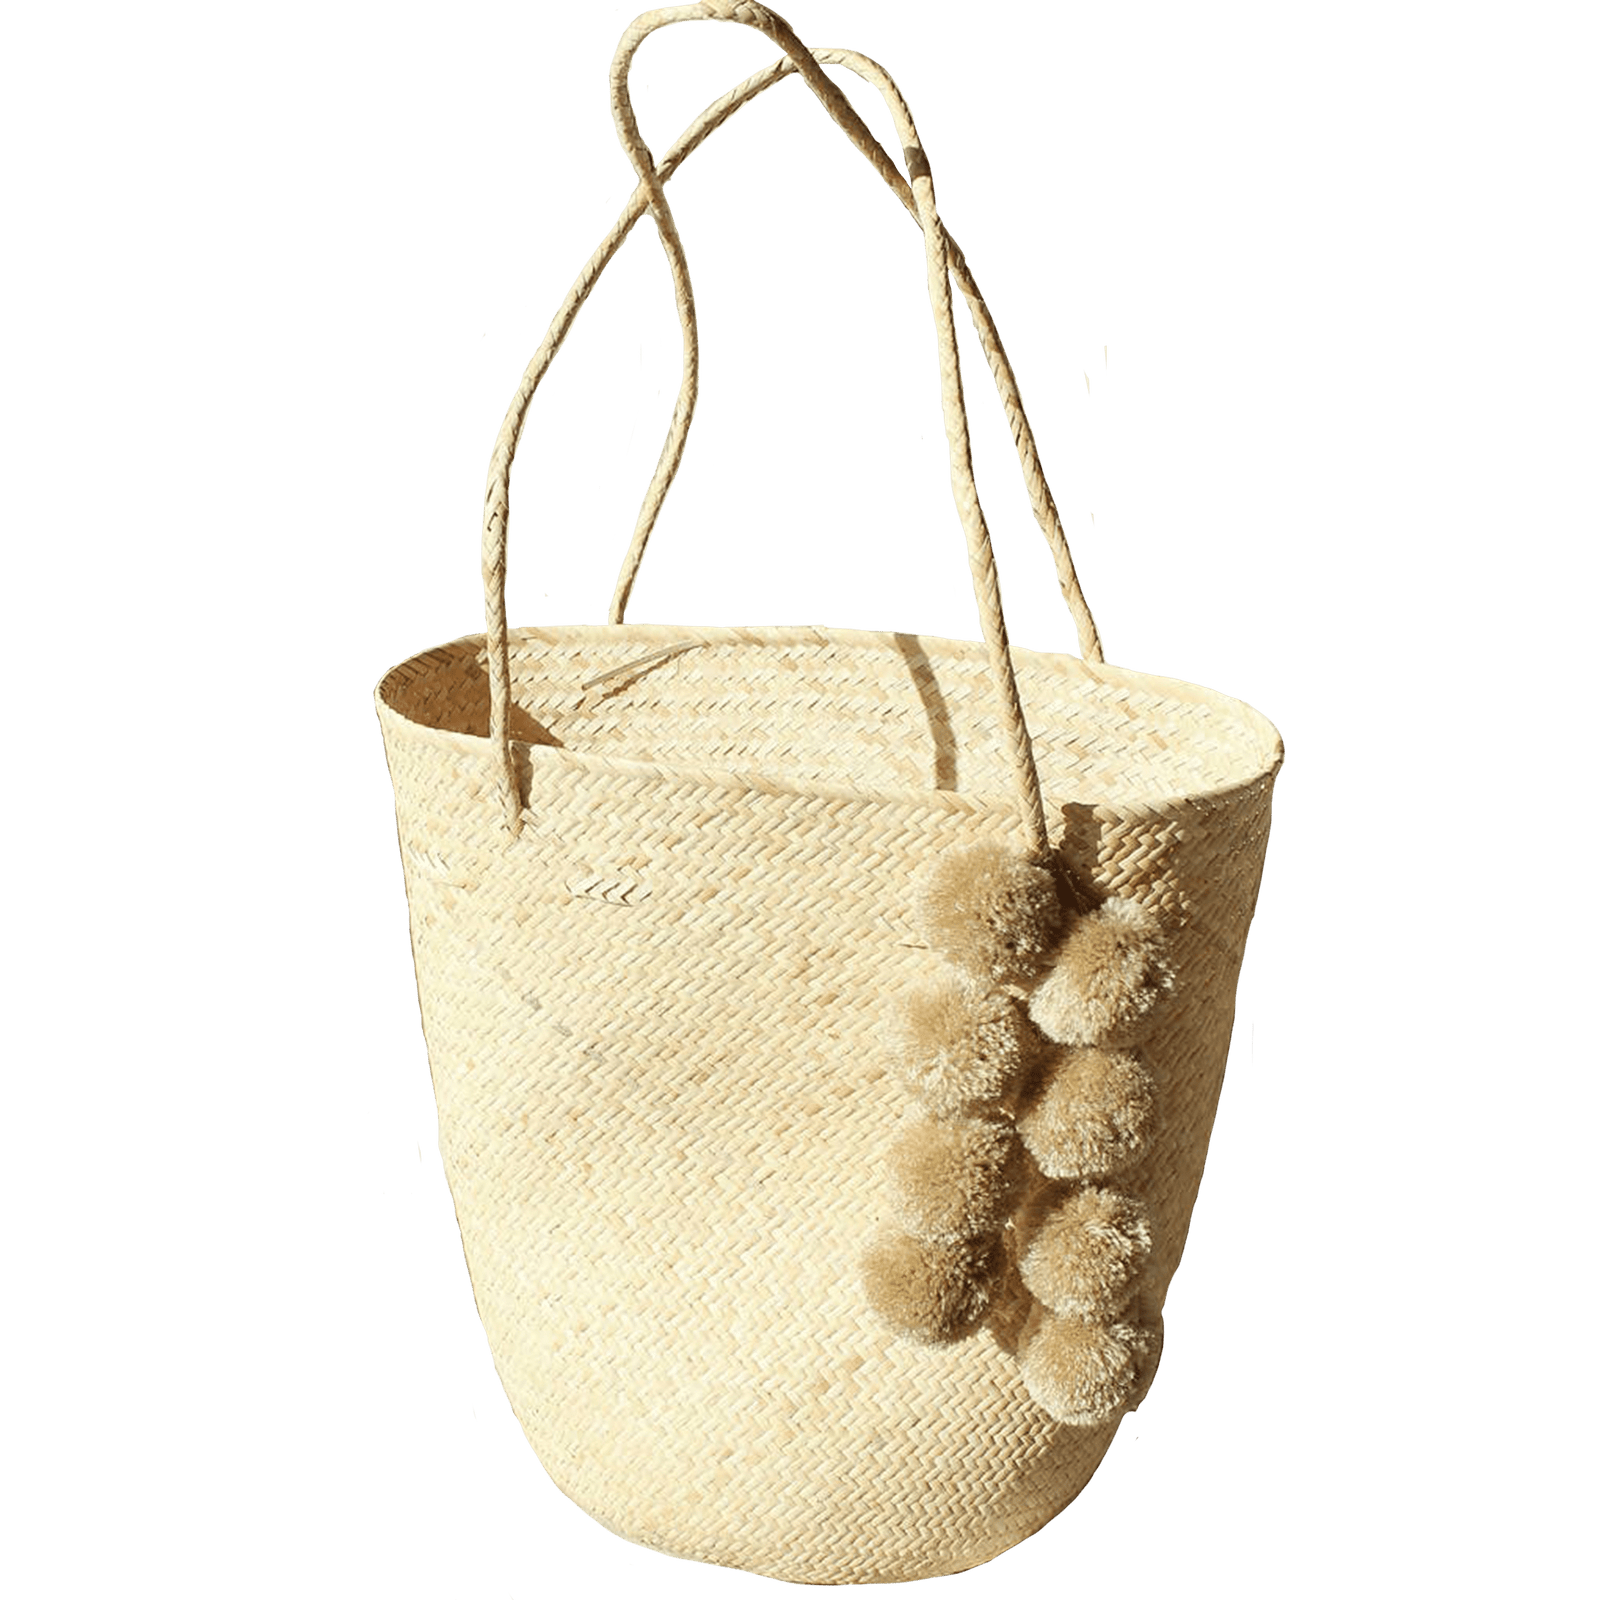 Brunna Co Clothing Serena Straw Bag with Beige Pom-poms